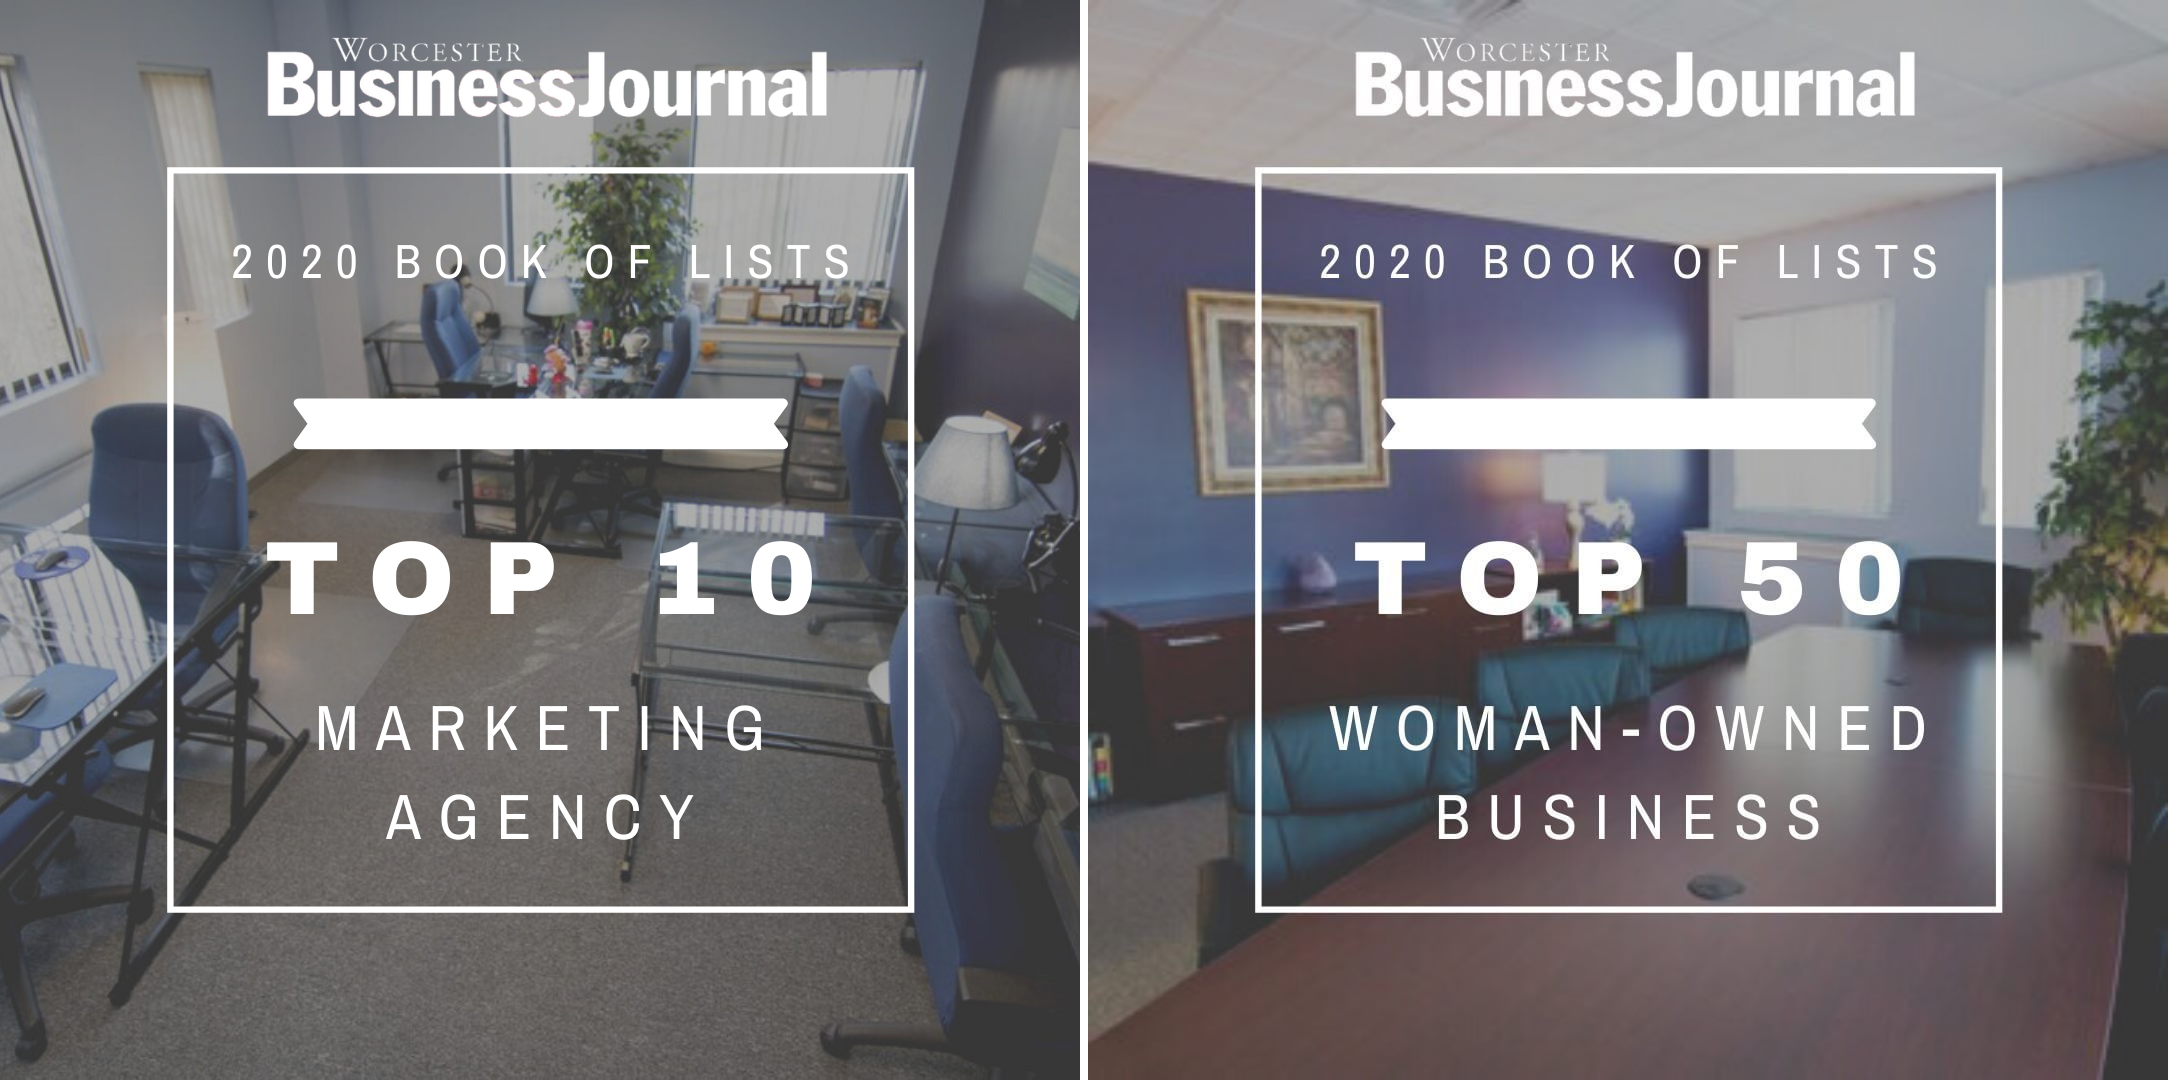 Vision Advertising as a Top Marketing Agency and Women Owned Business in the WBJ Book of Lists for 2020.